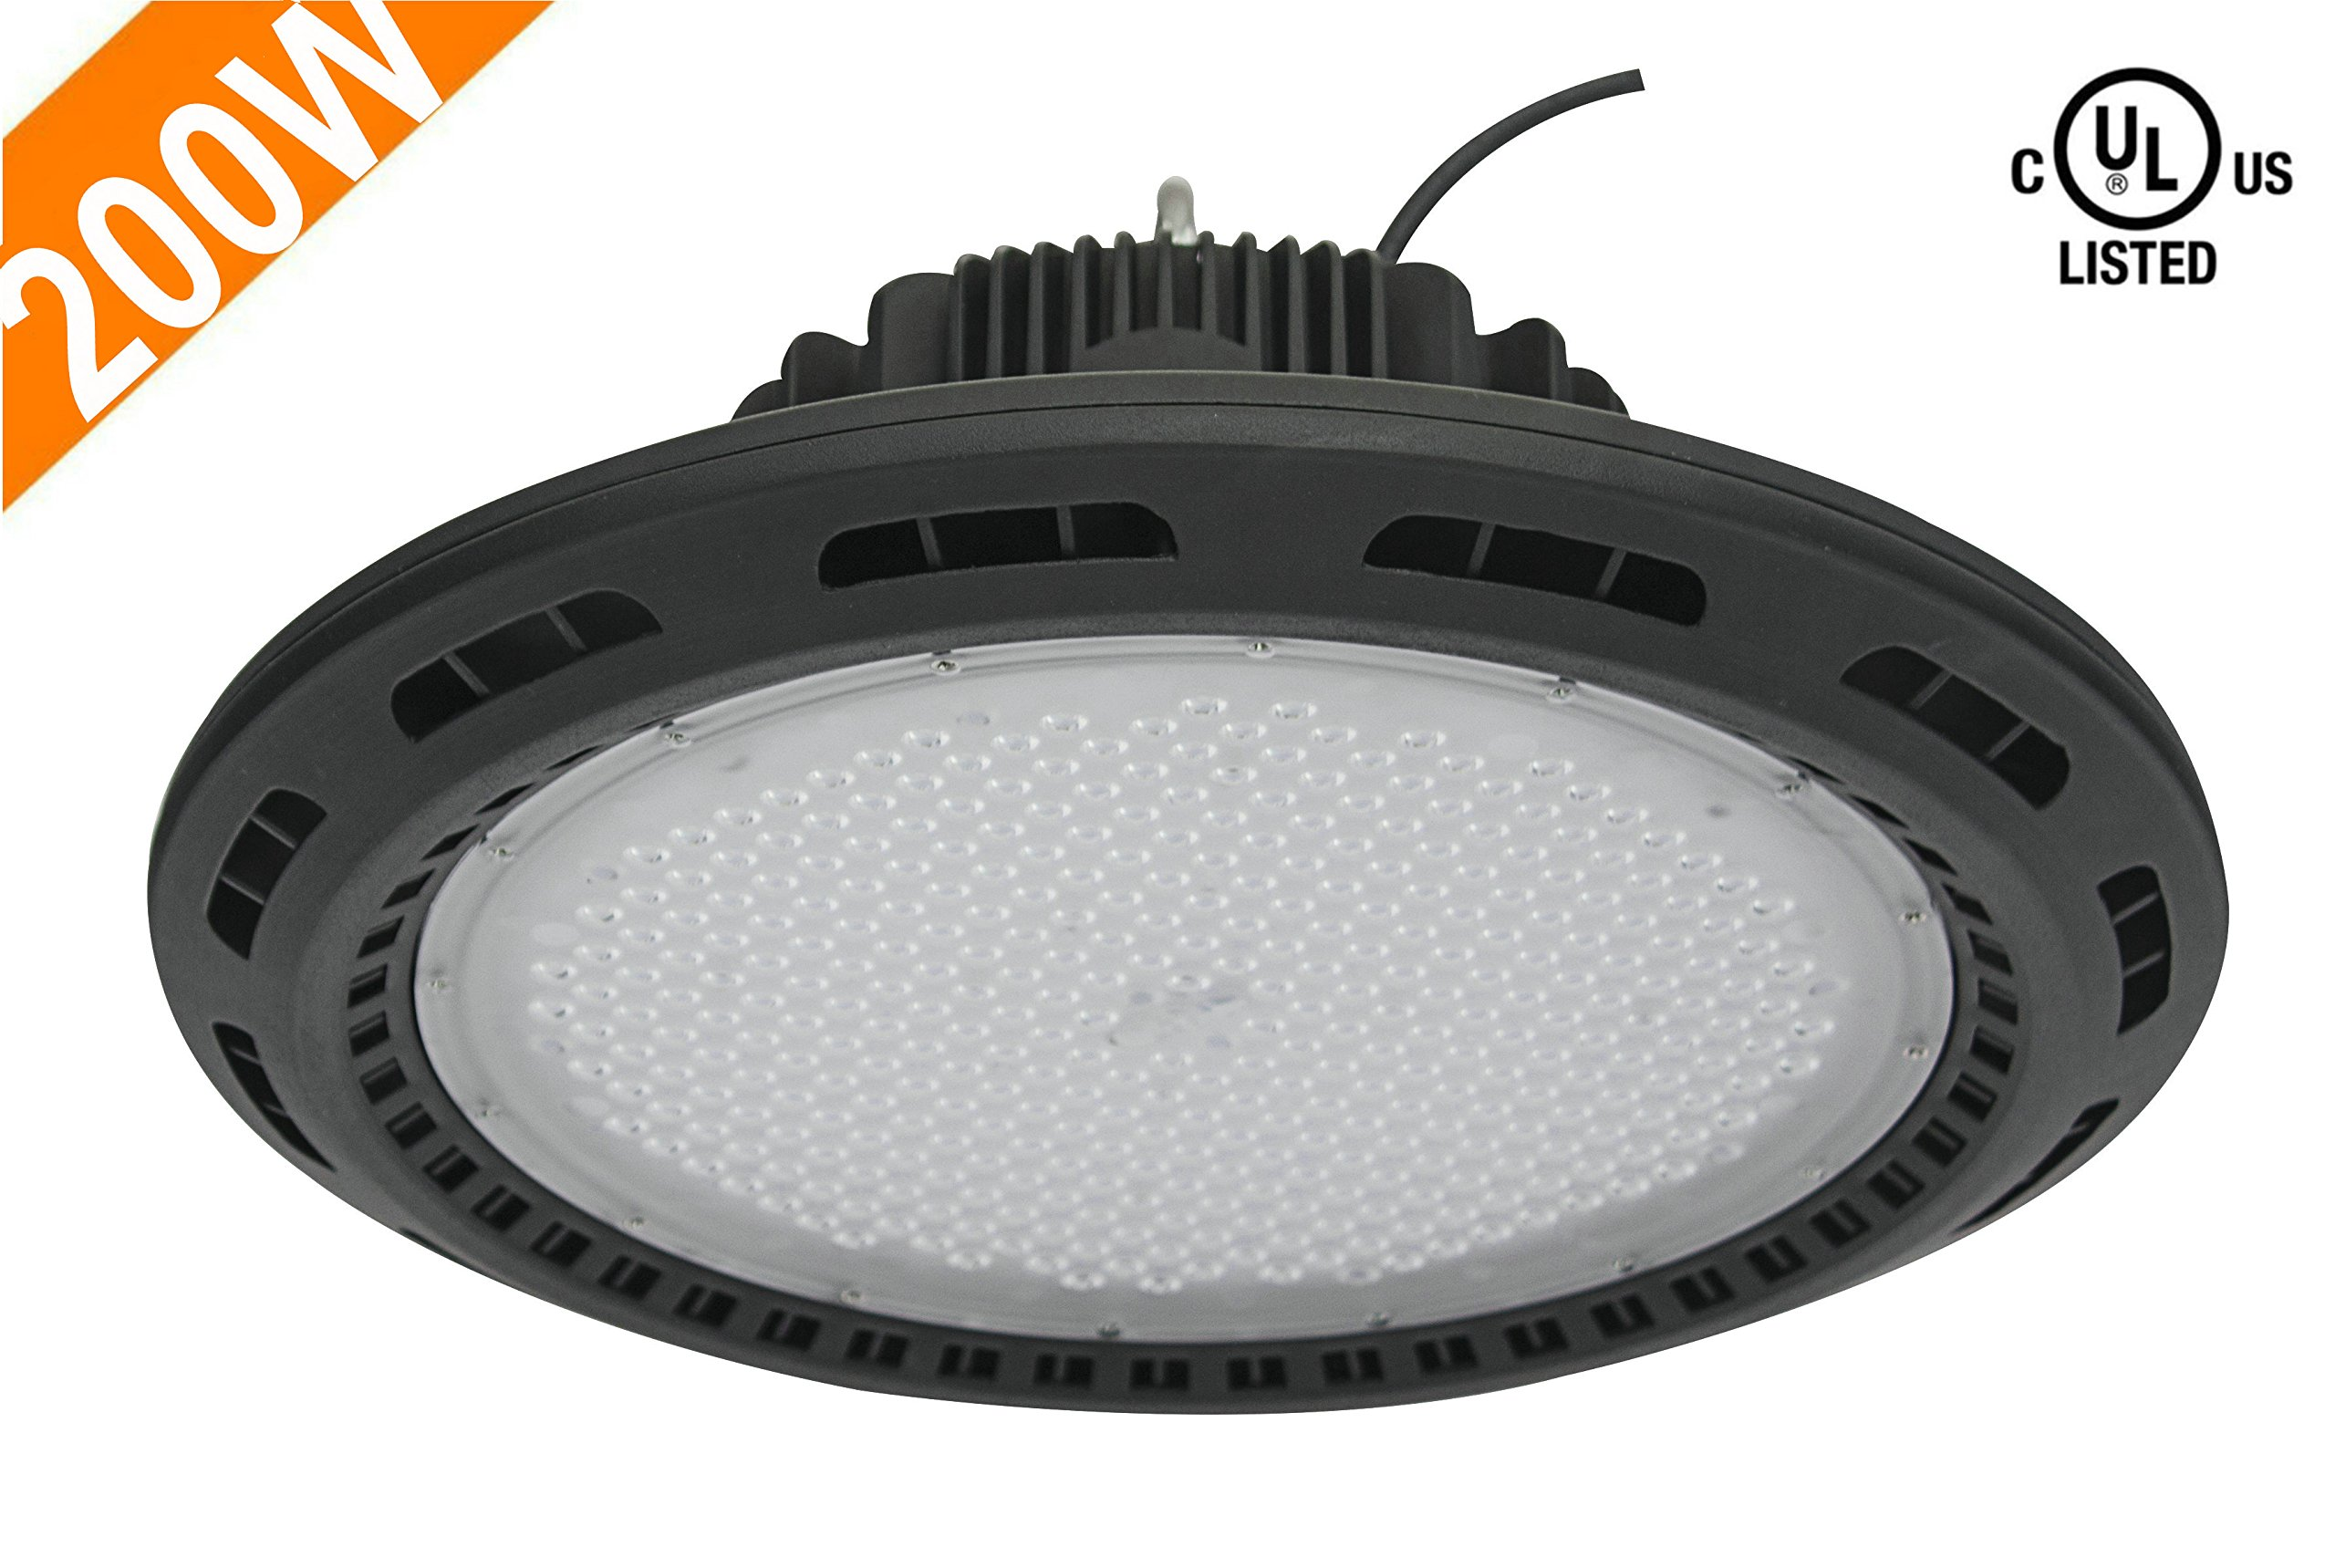 CY LED 200W UFO LED High Bay Lighting, UL Listed, 400W HPS/MH Bulbs Equivalent, 22500lm, Waterproof, Daylight White, 6000K, 120¡ã Beam, Super Bright Commercial Lighting, LED High Bay Lights